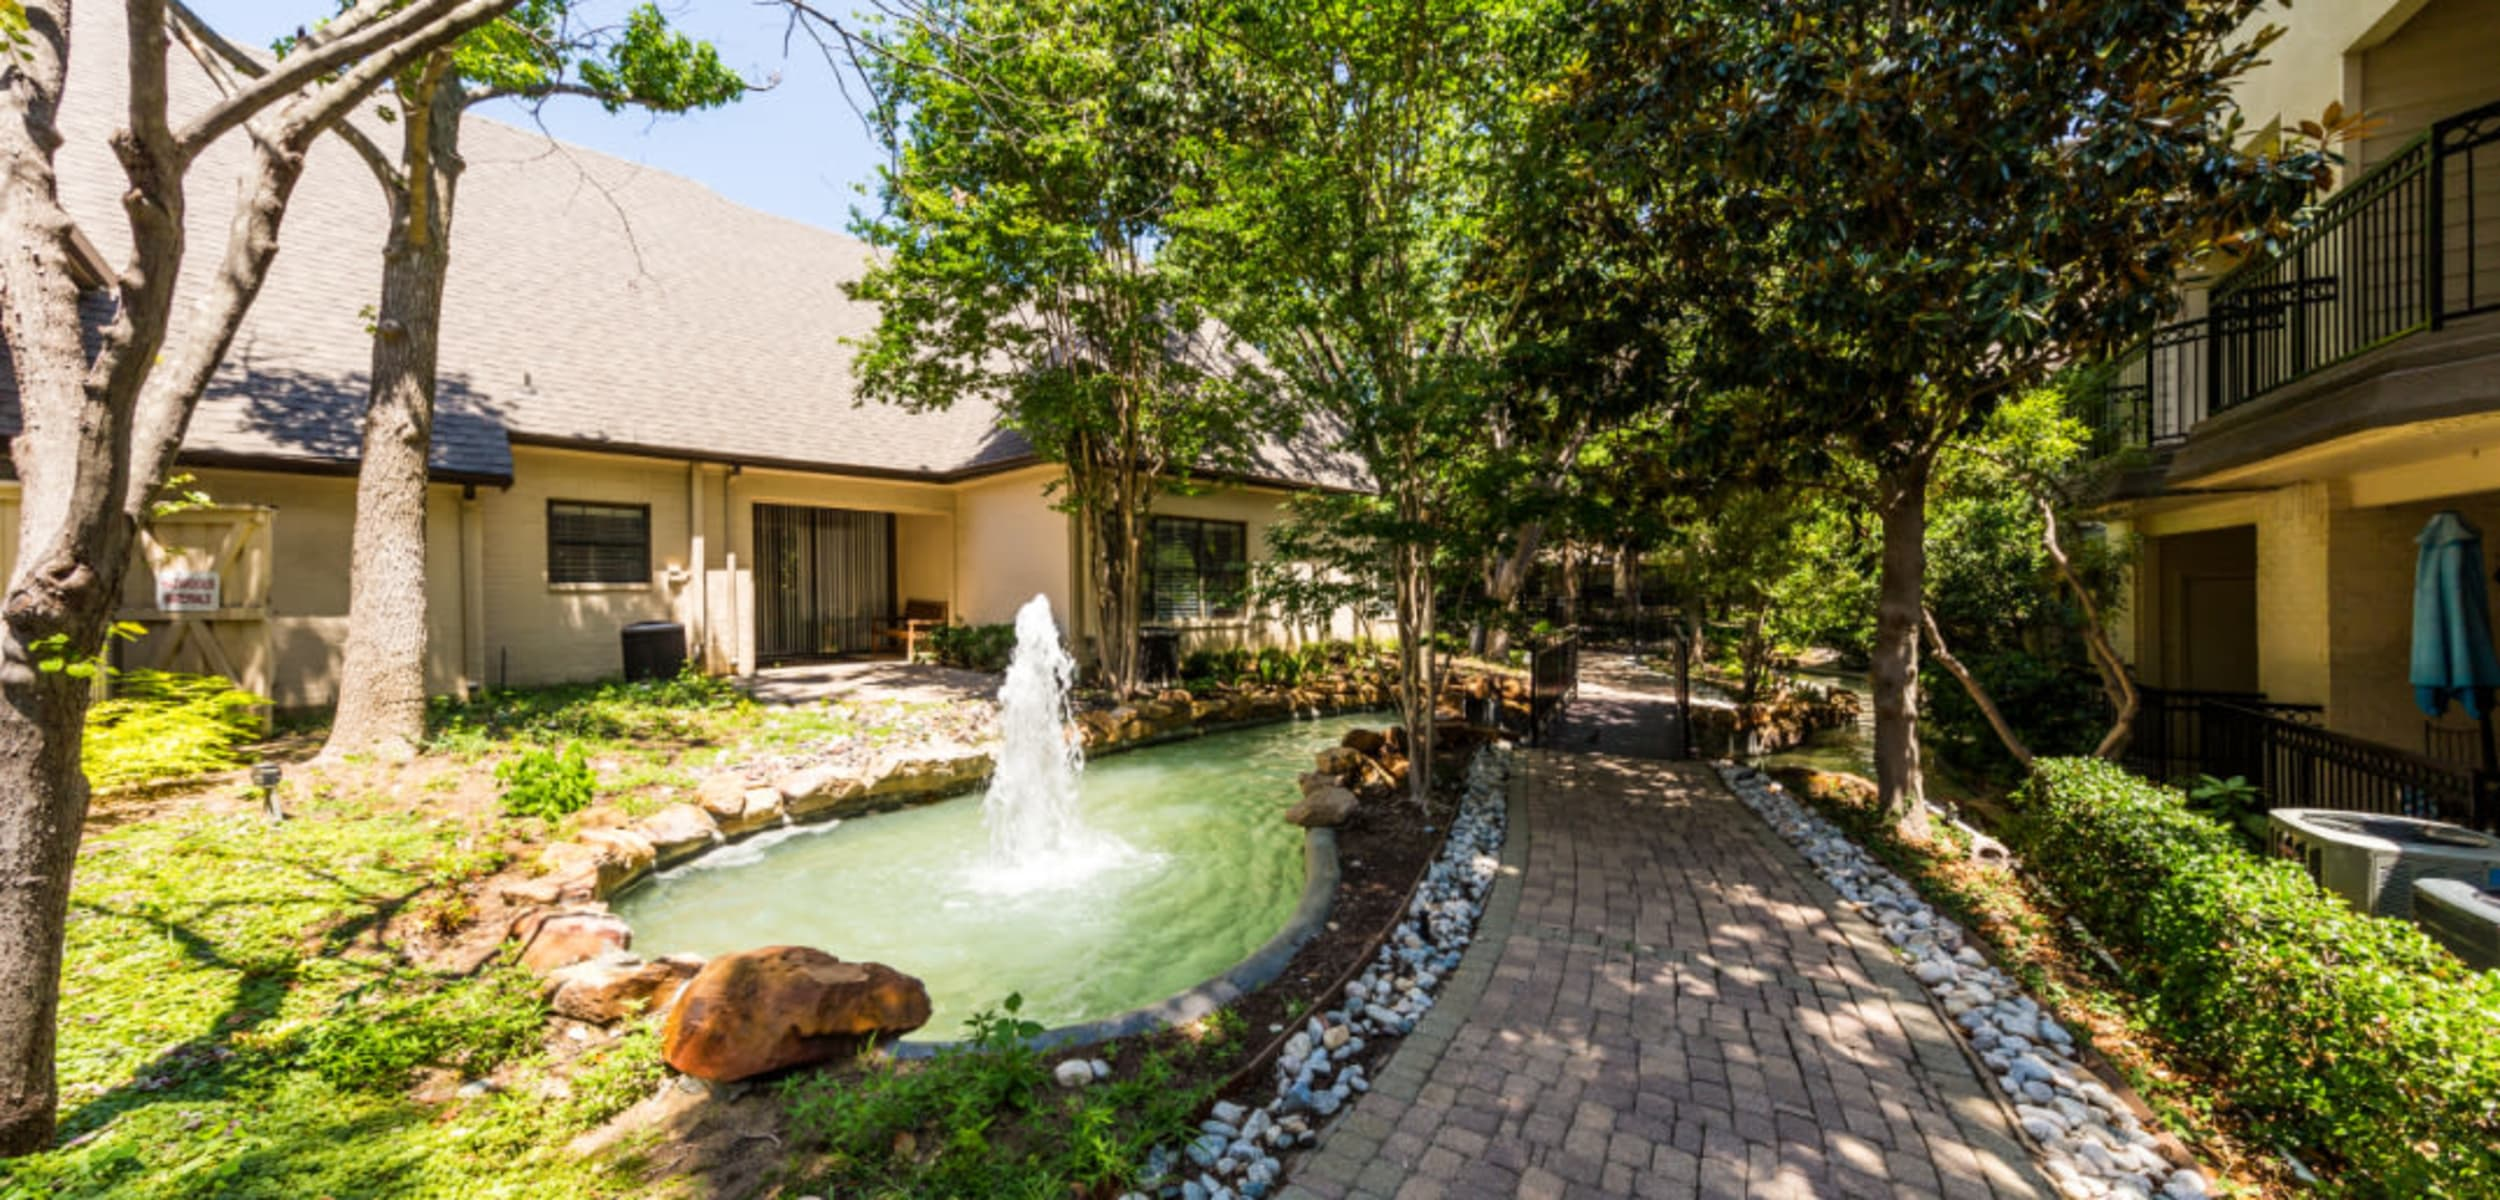 Brick walking path next to water feature pond between unit buildings at Marquis at Waterview in Richardson, Texas